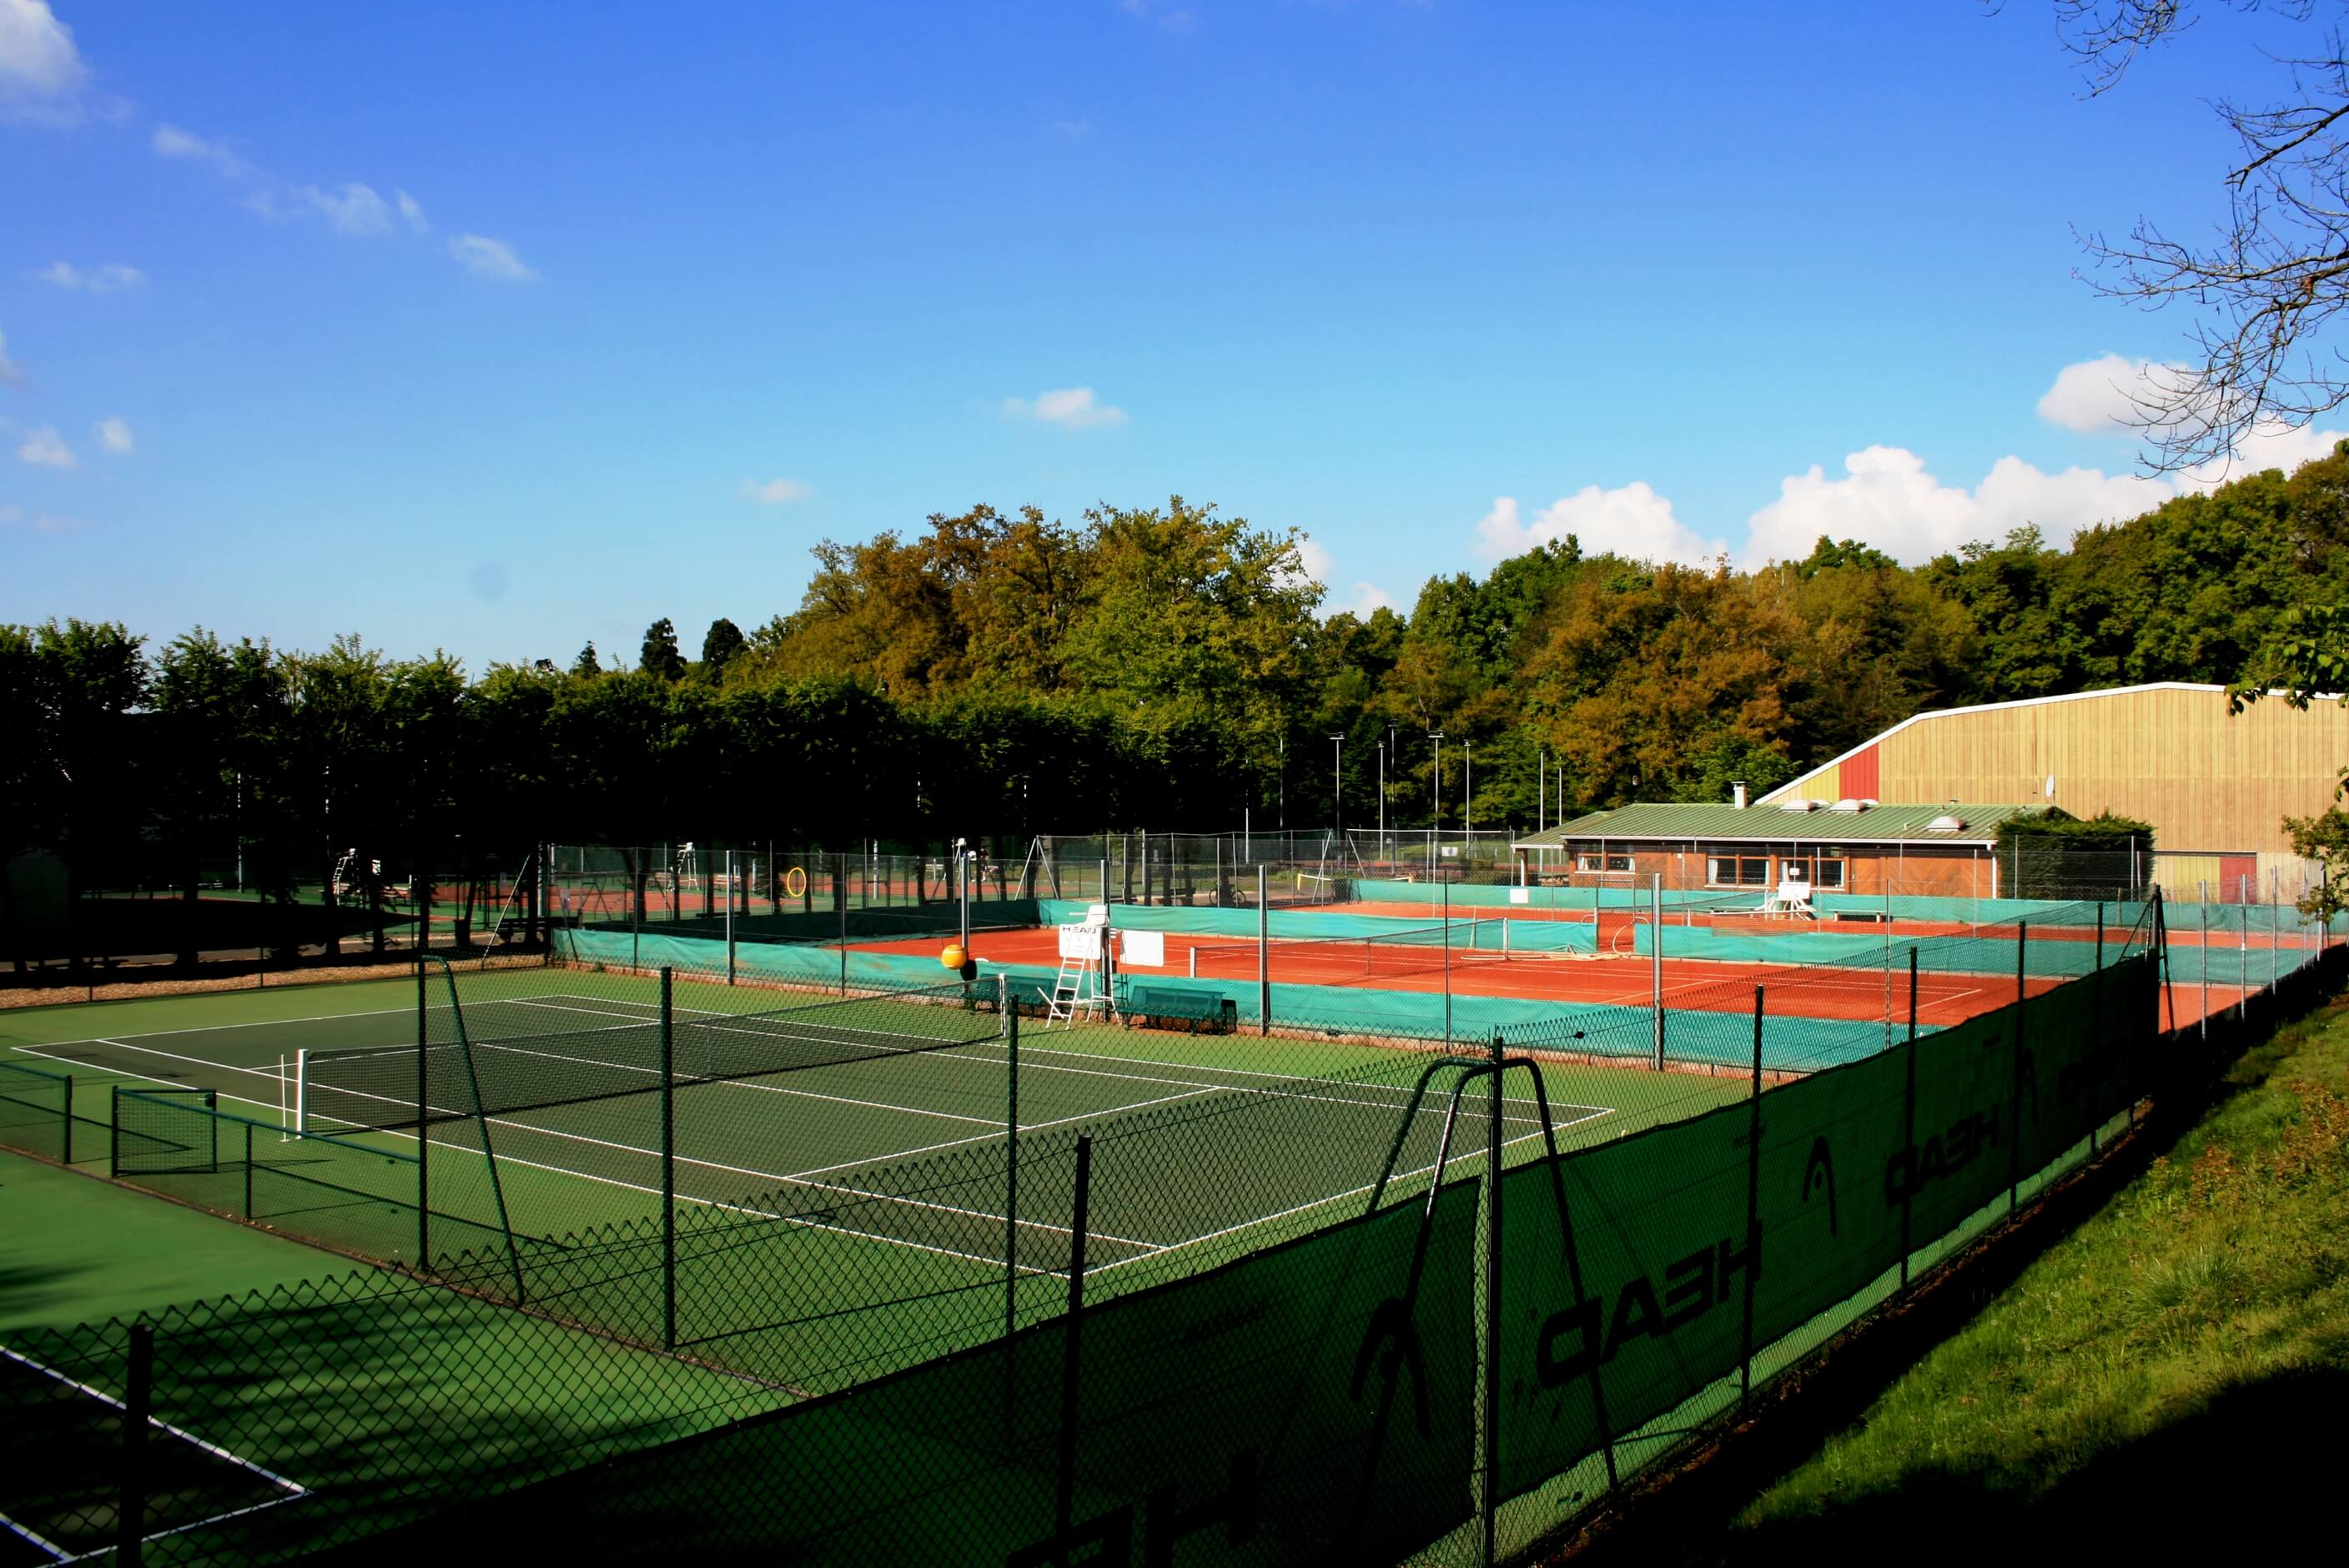 Tennis Club de Mennecy